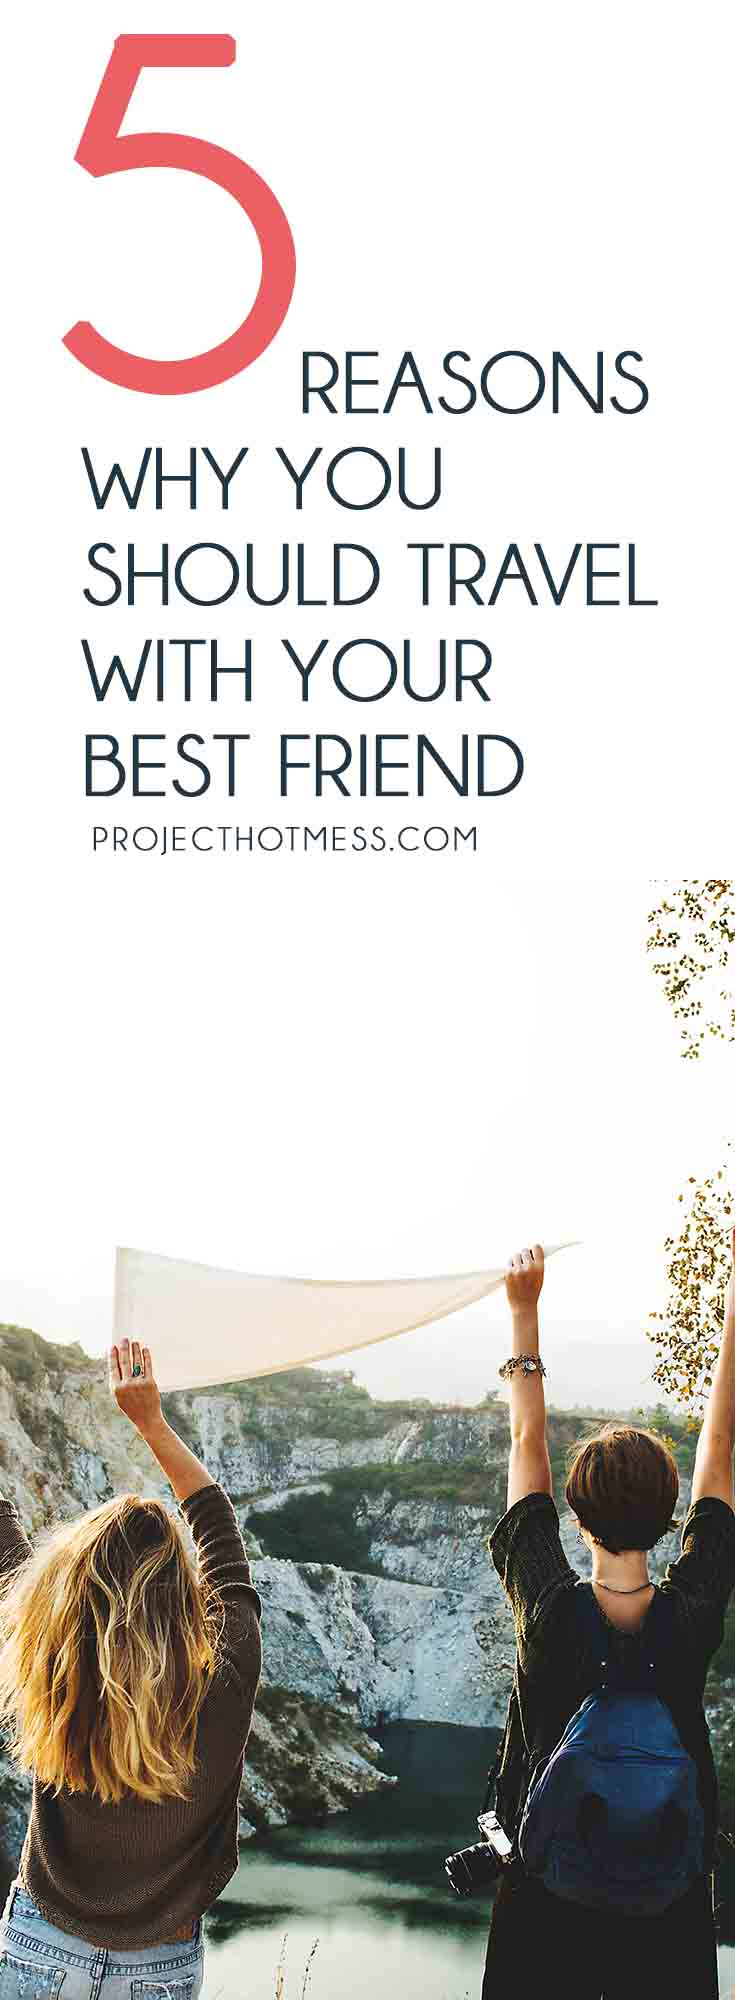 Finding a good travel partner can be tough, you don't know if you're going to get along or if you'll like the same things. So travel with your best friend! Friends   Friendships   Travel   Travel Tips   Travelling When Young   Travelling With Friends   Travel Hacks   Travel Advice